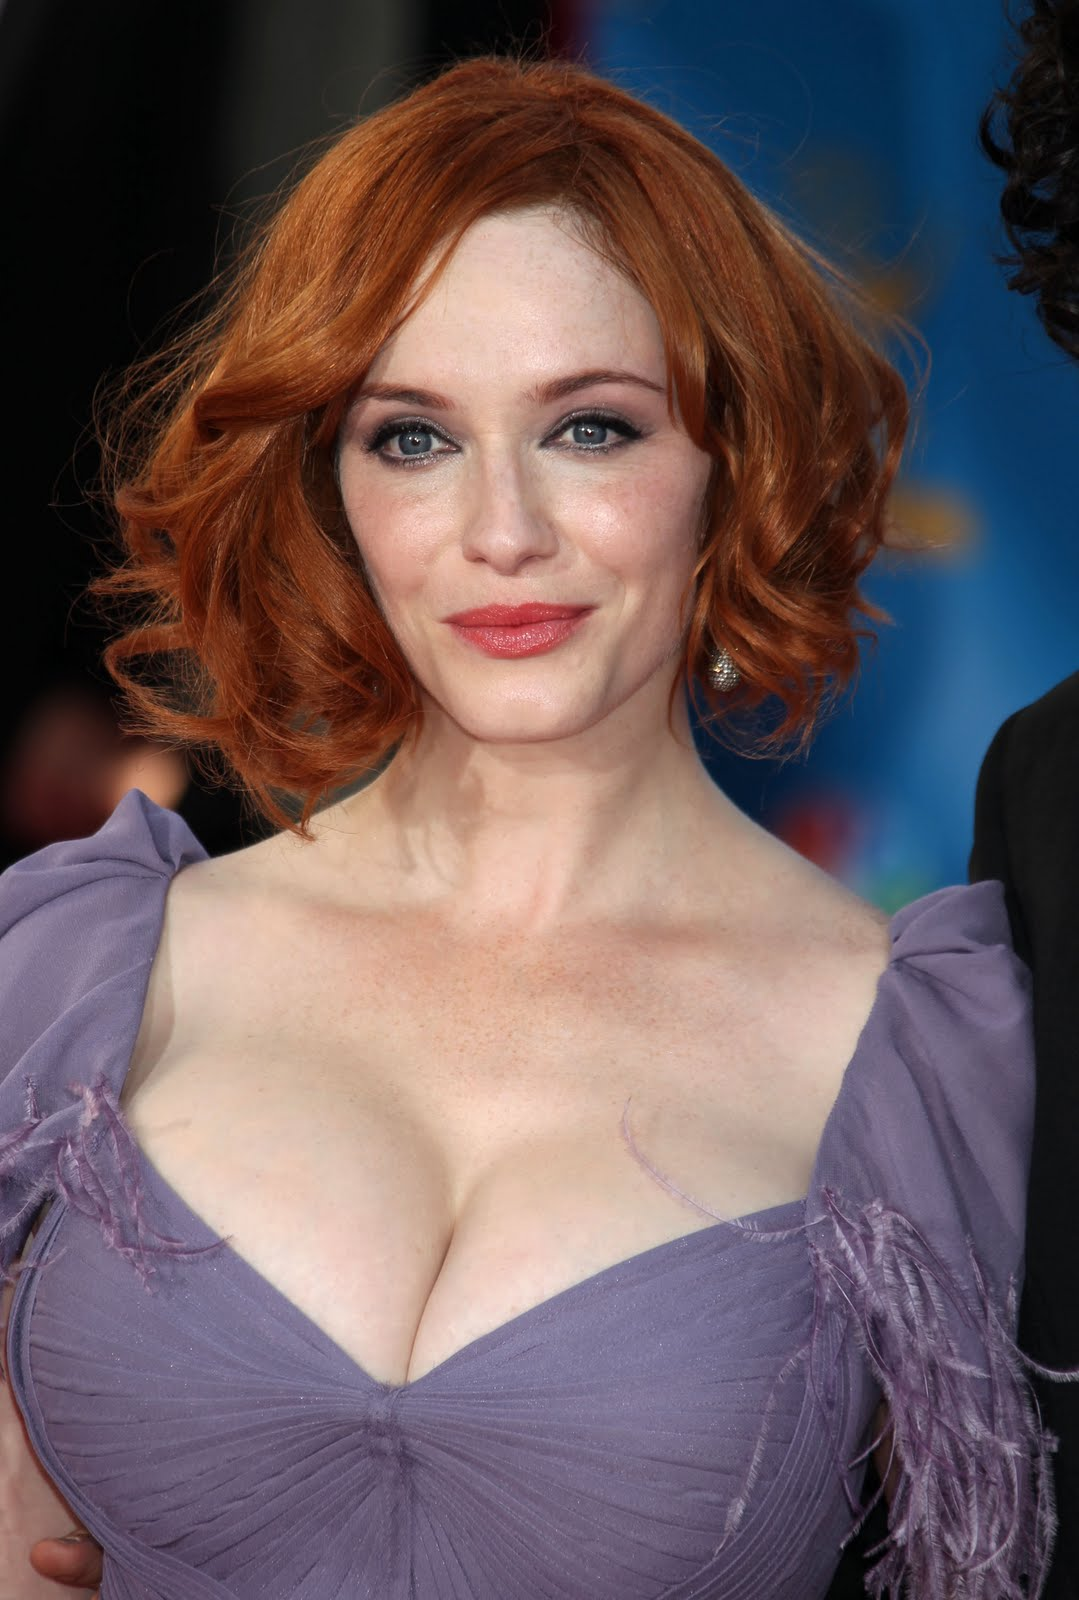 La Sublime Christina Hendricks